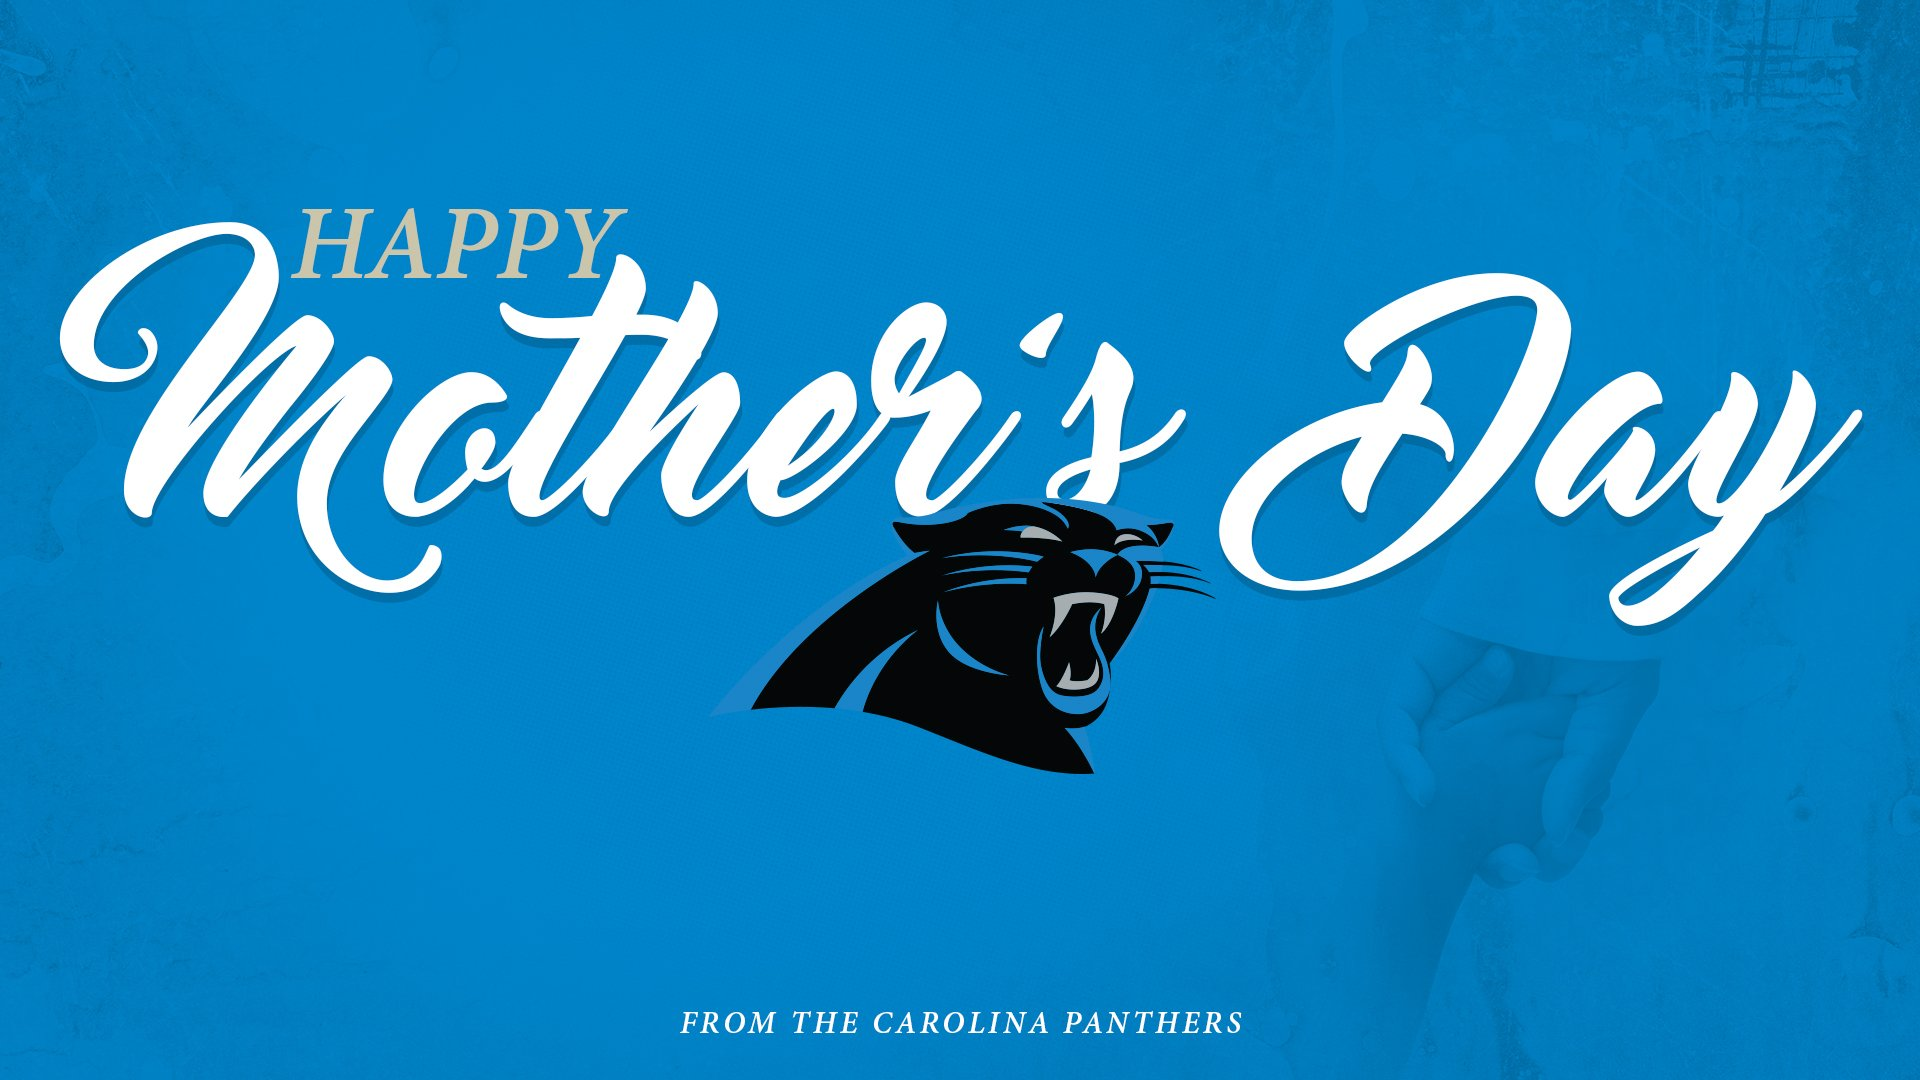 #HappyMothersDay to all the moms in the #Panthers family! https://t.co/Y295a94tFF